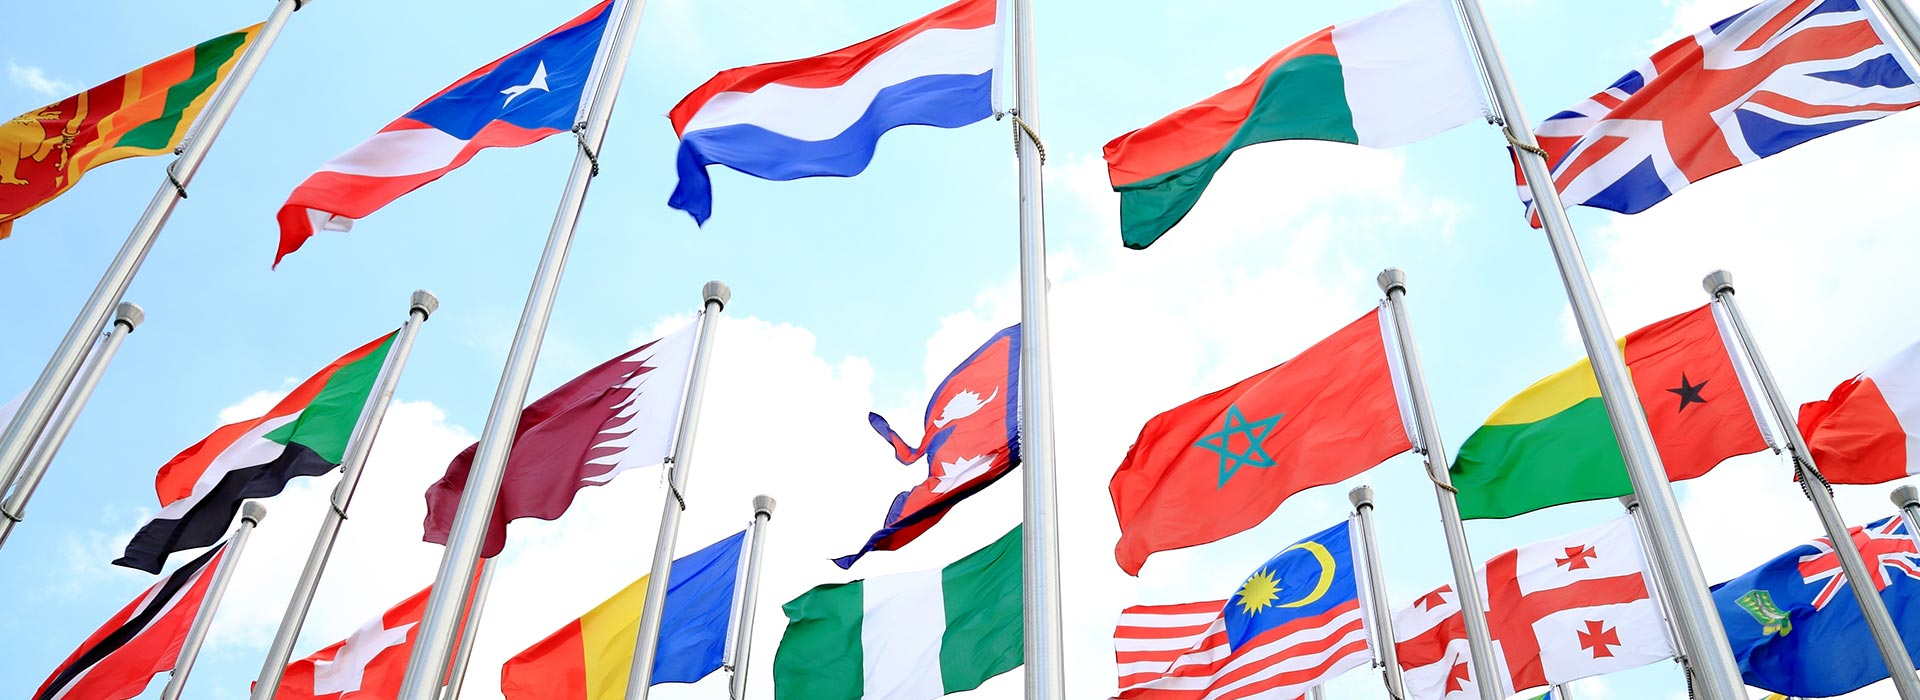 worldwide flags